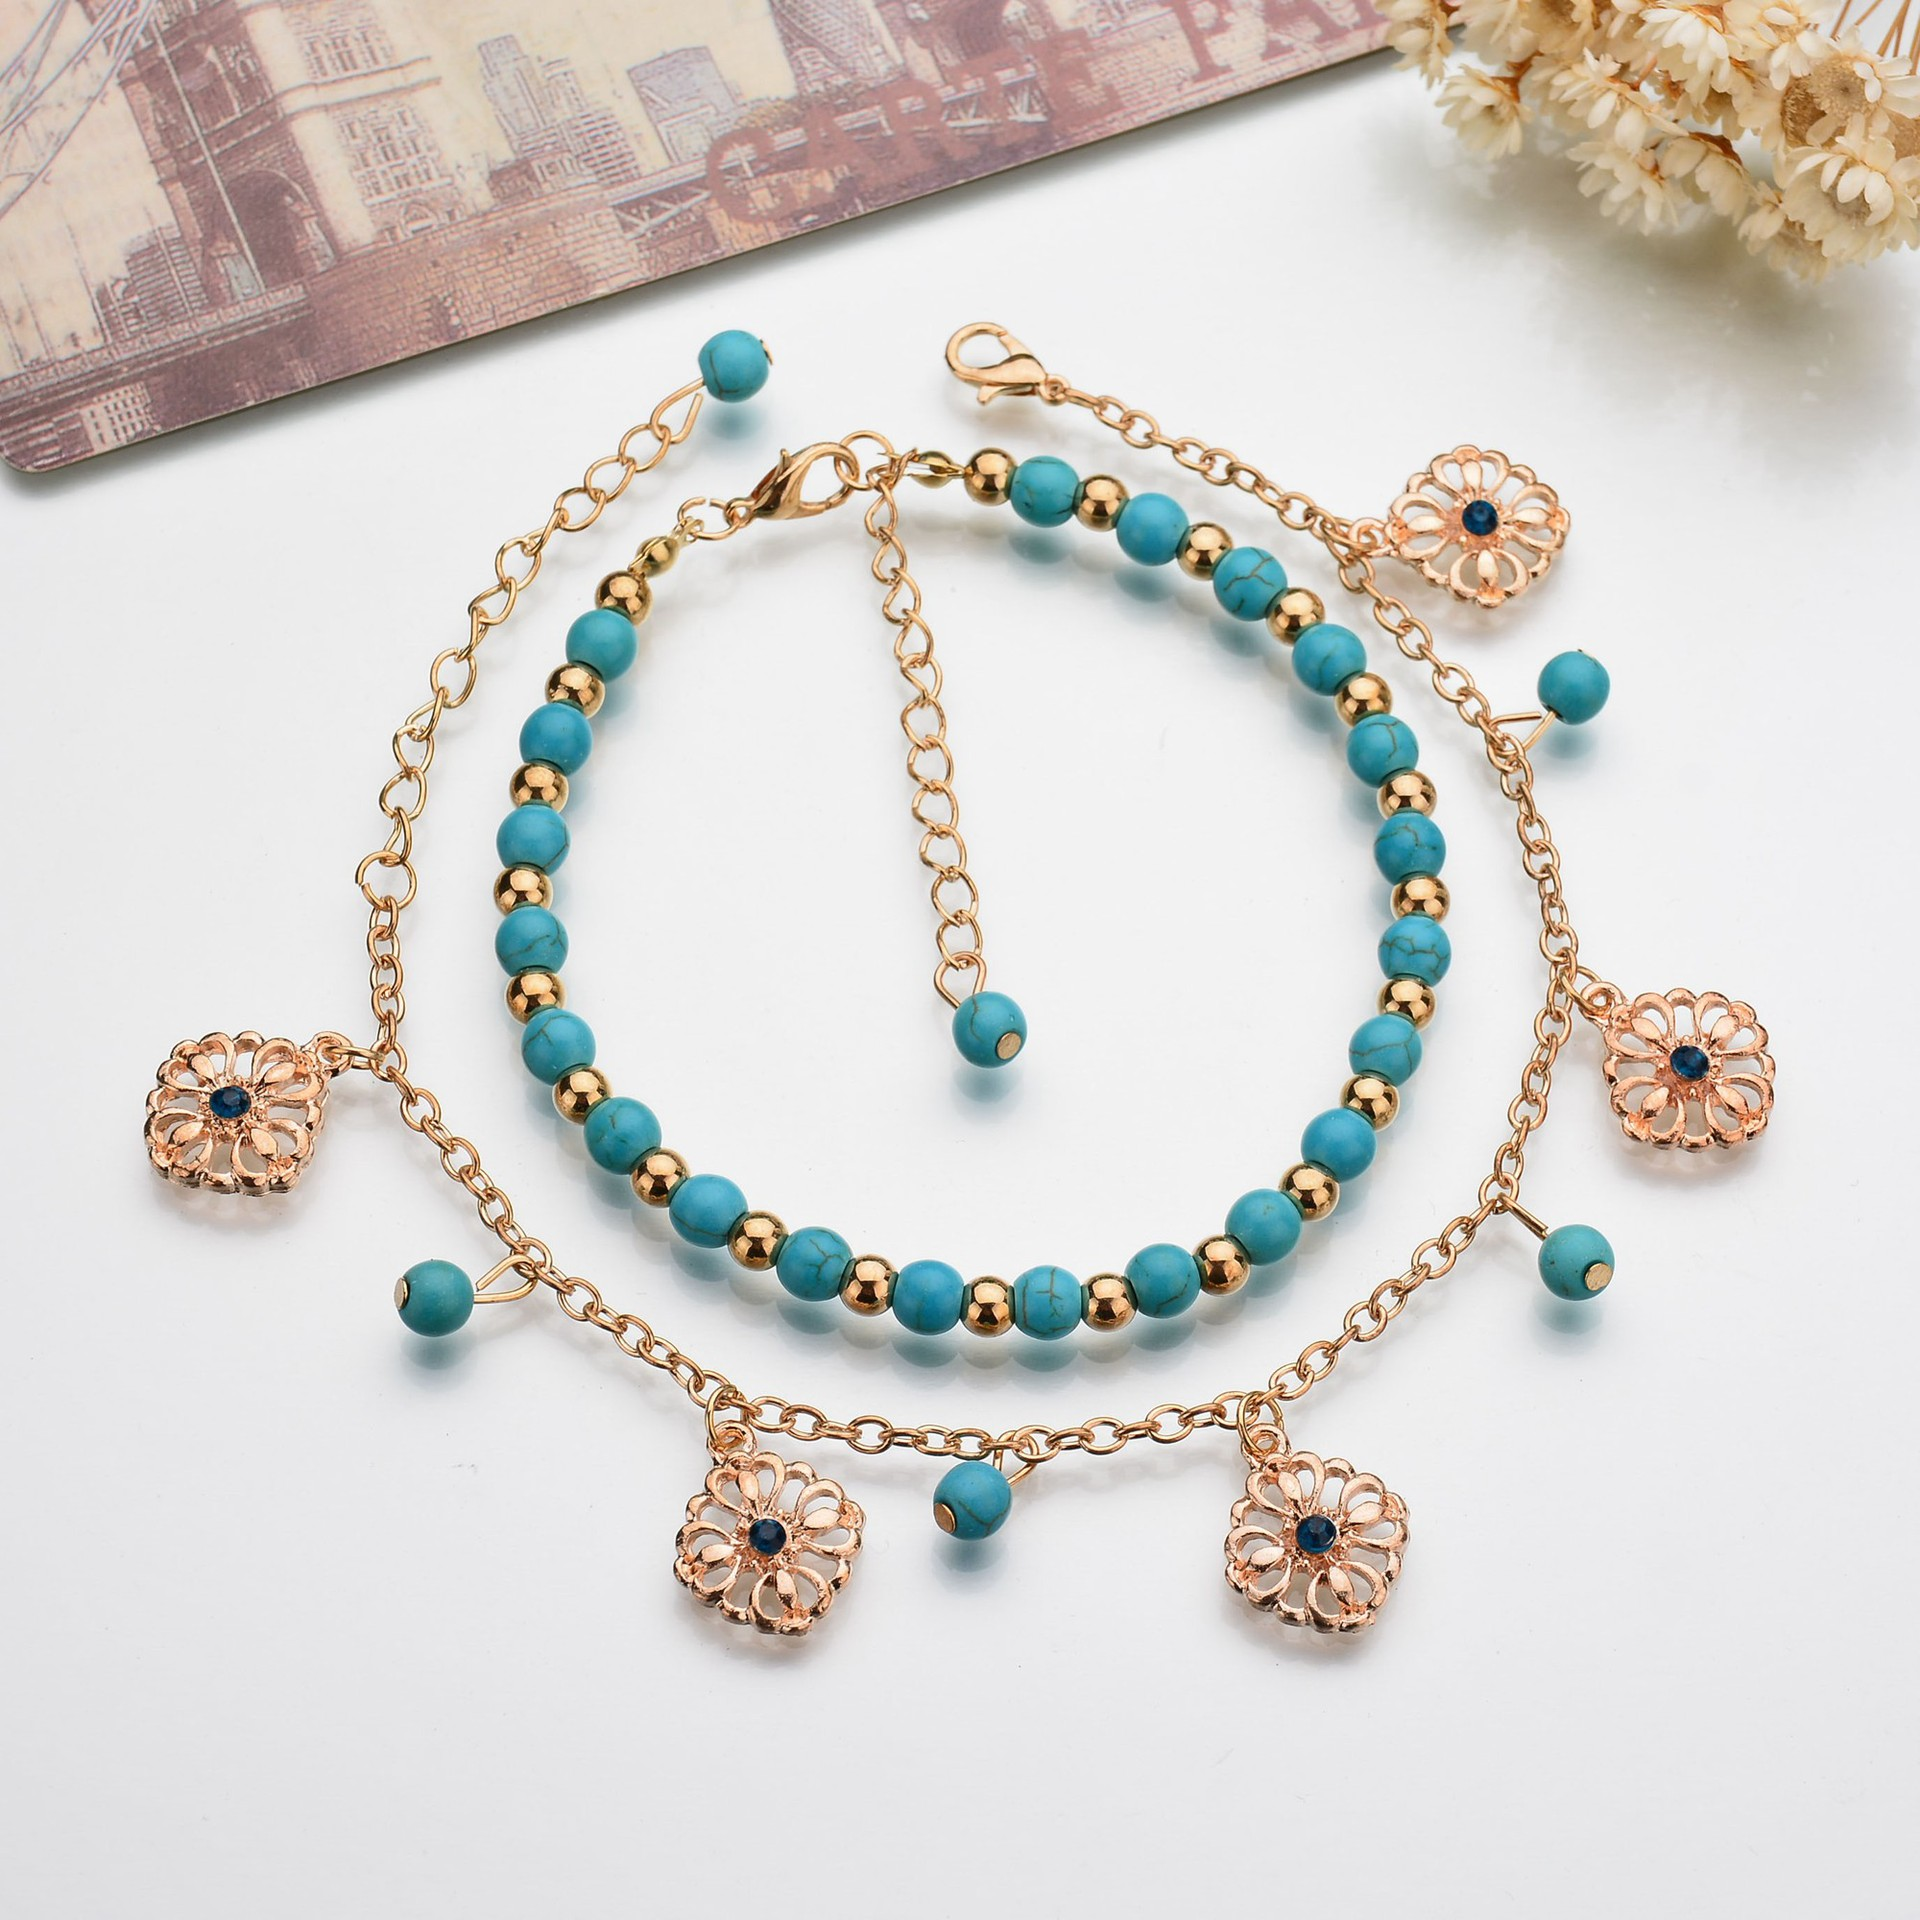 Halhal Simple Turquoises Anklets for Women Fashion Barefoot Sandals Chain Ankle Bracelets on the Leg Feet Jewelry Children Gift 4